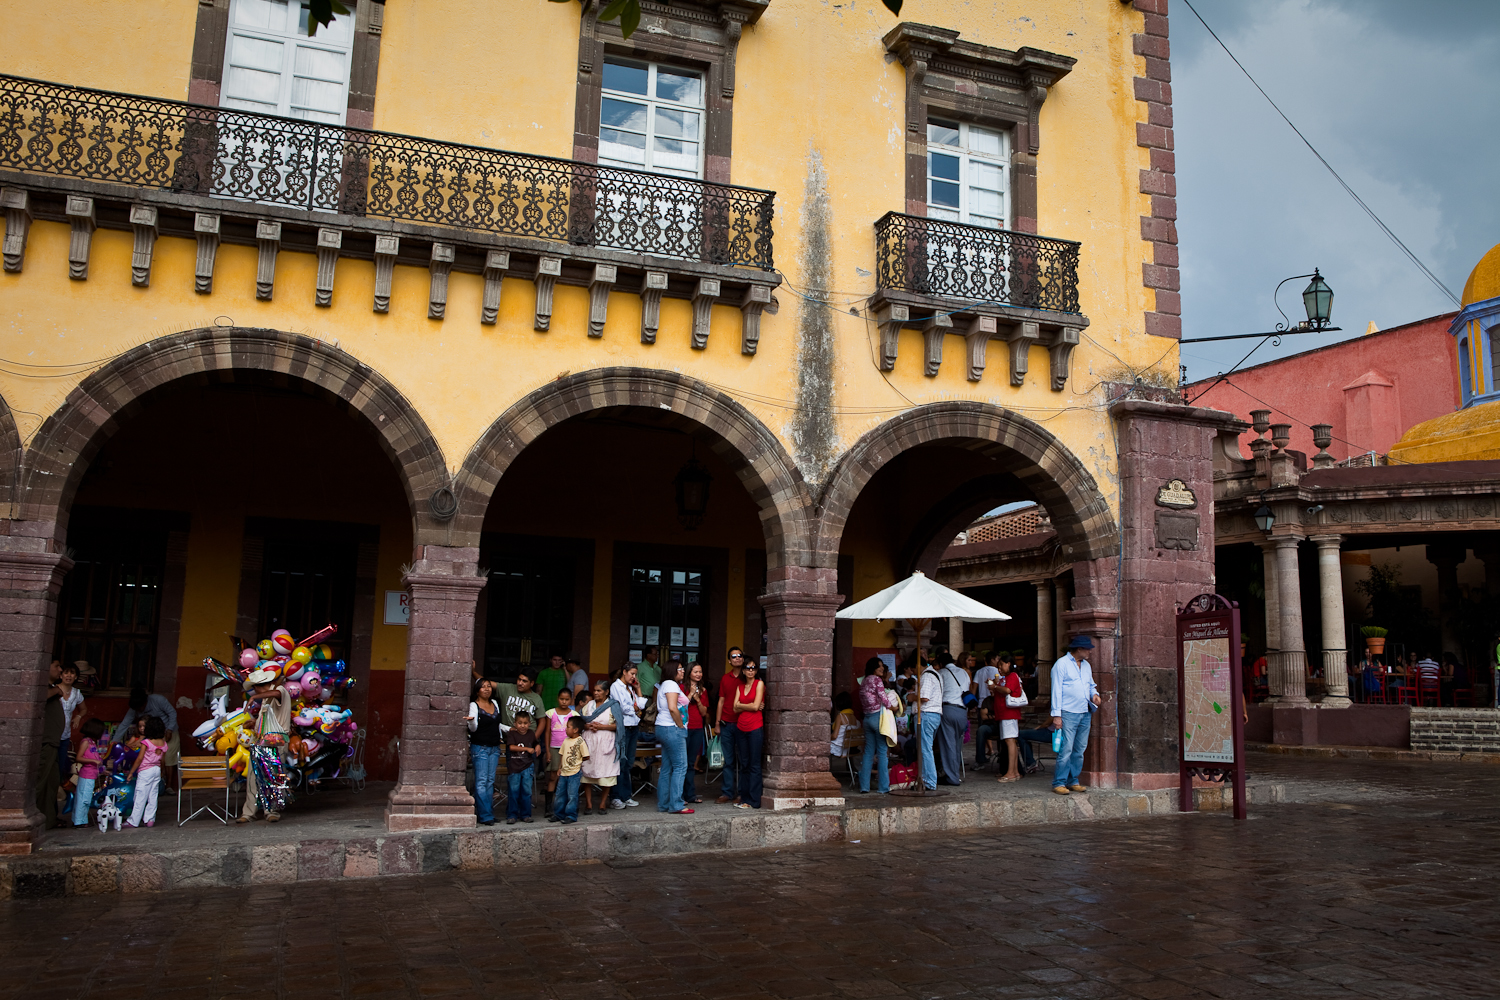 People hiding from the summer rain in downtown san miguel de allende, mexico